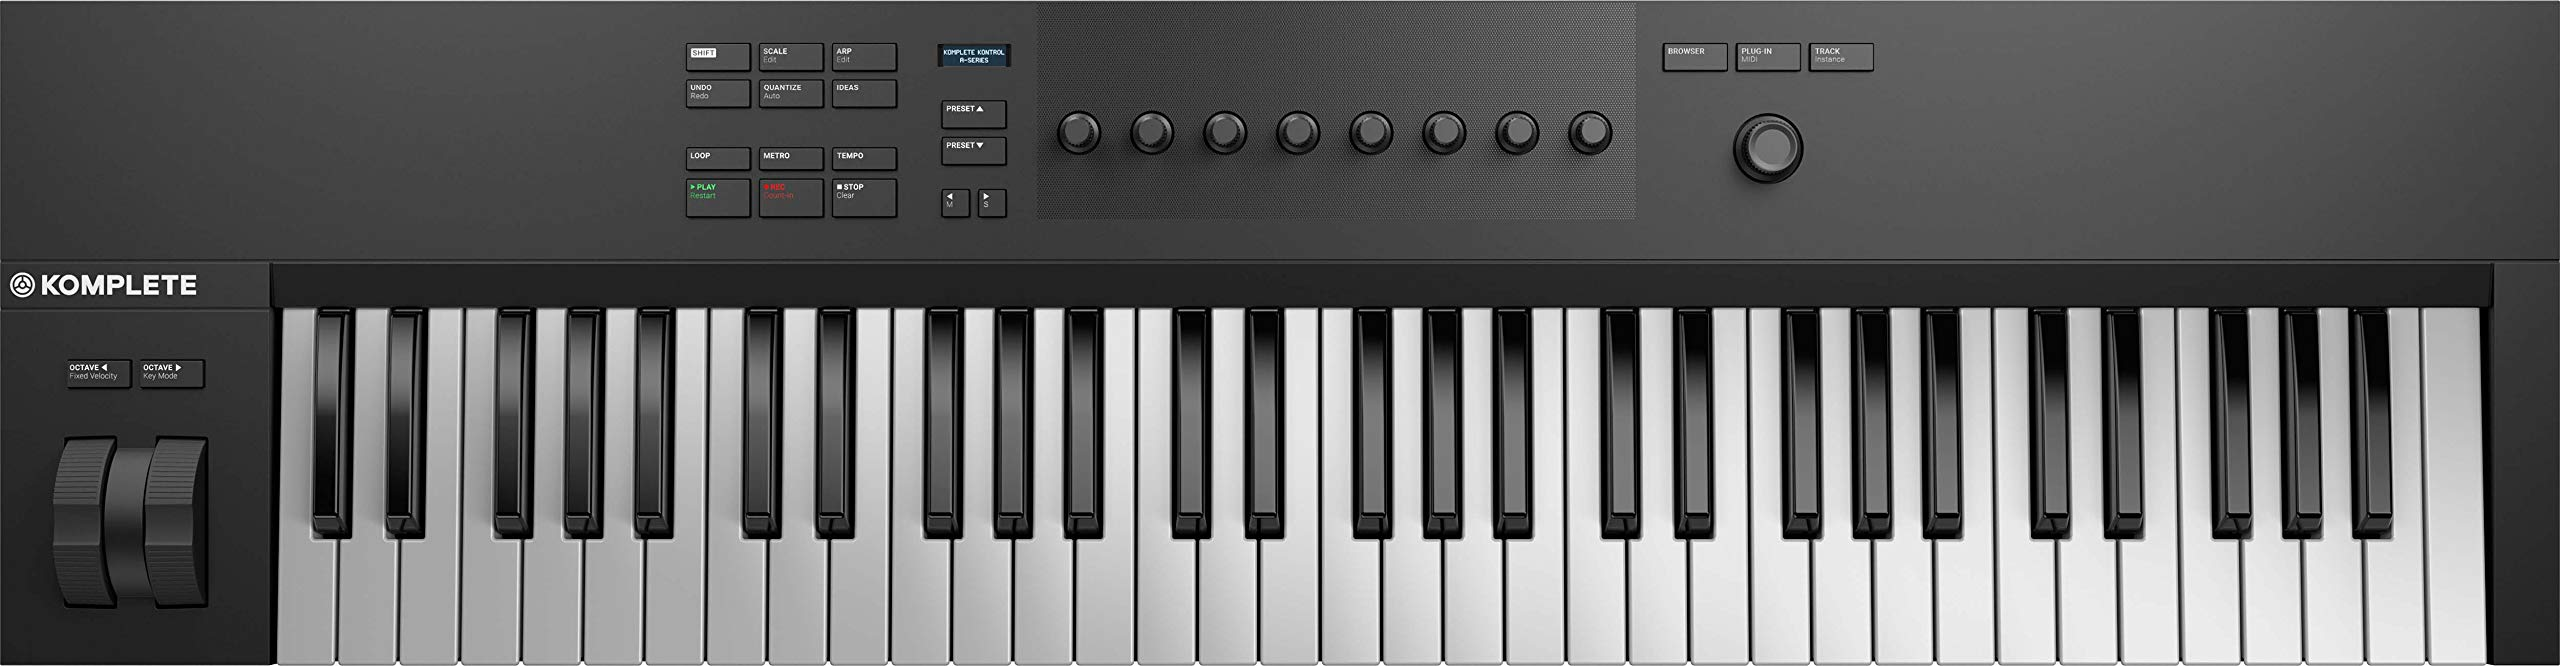 Native Instruments Komplete Kontrol A61 Controller Keyboard by Native Instruments (Image #2)